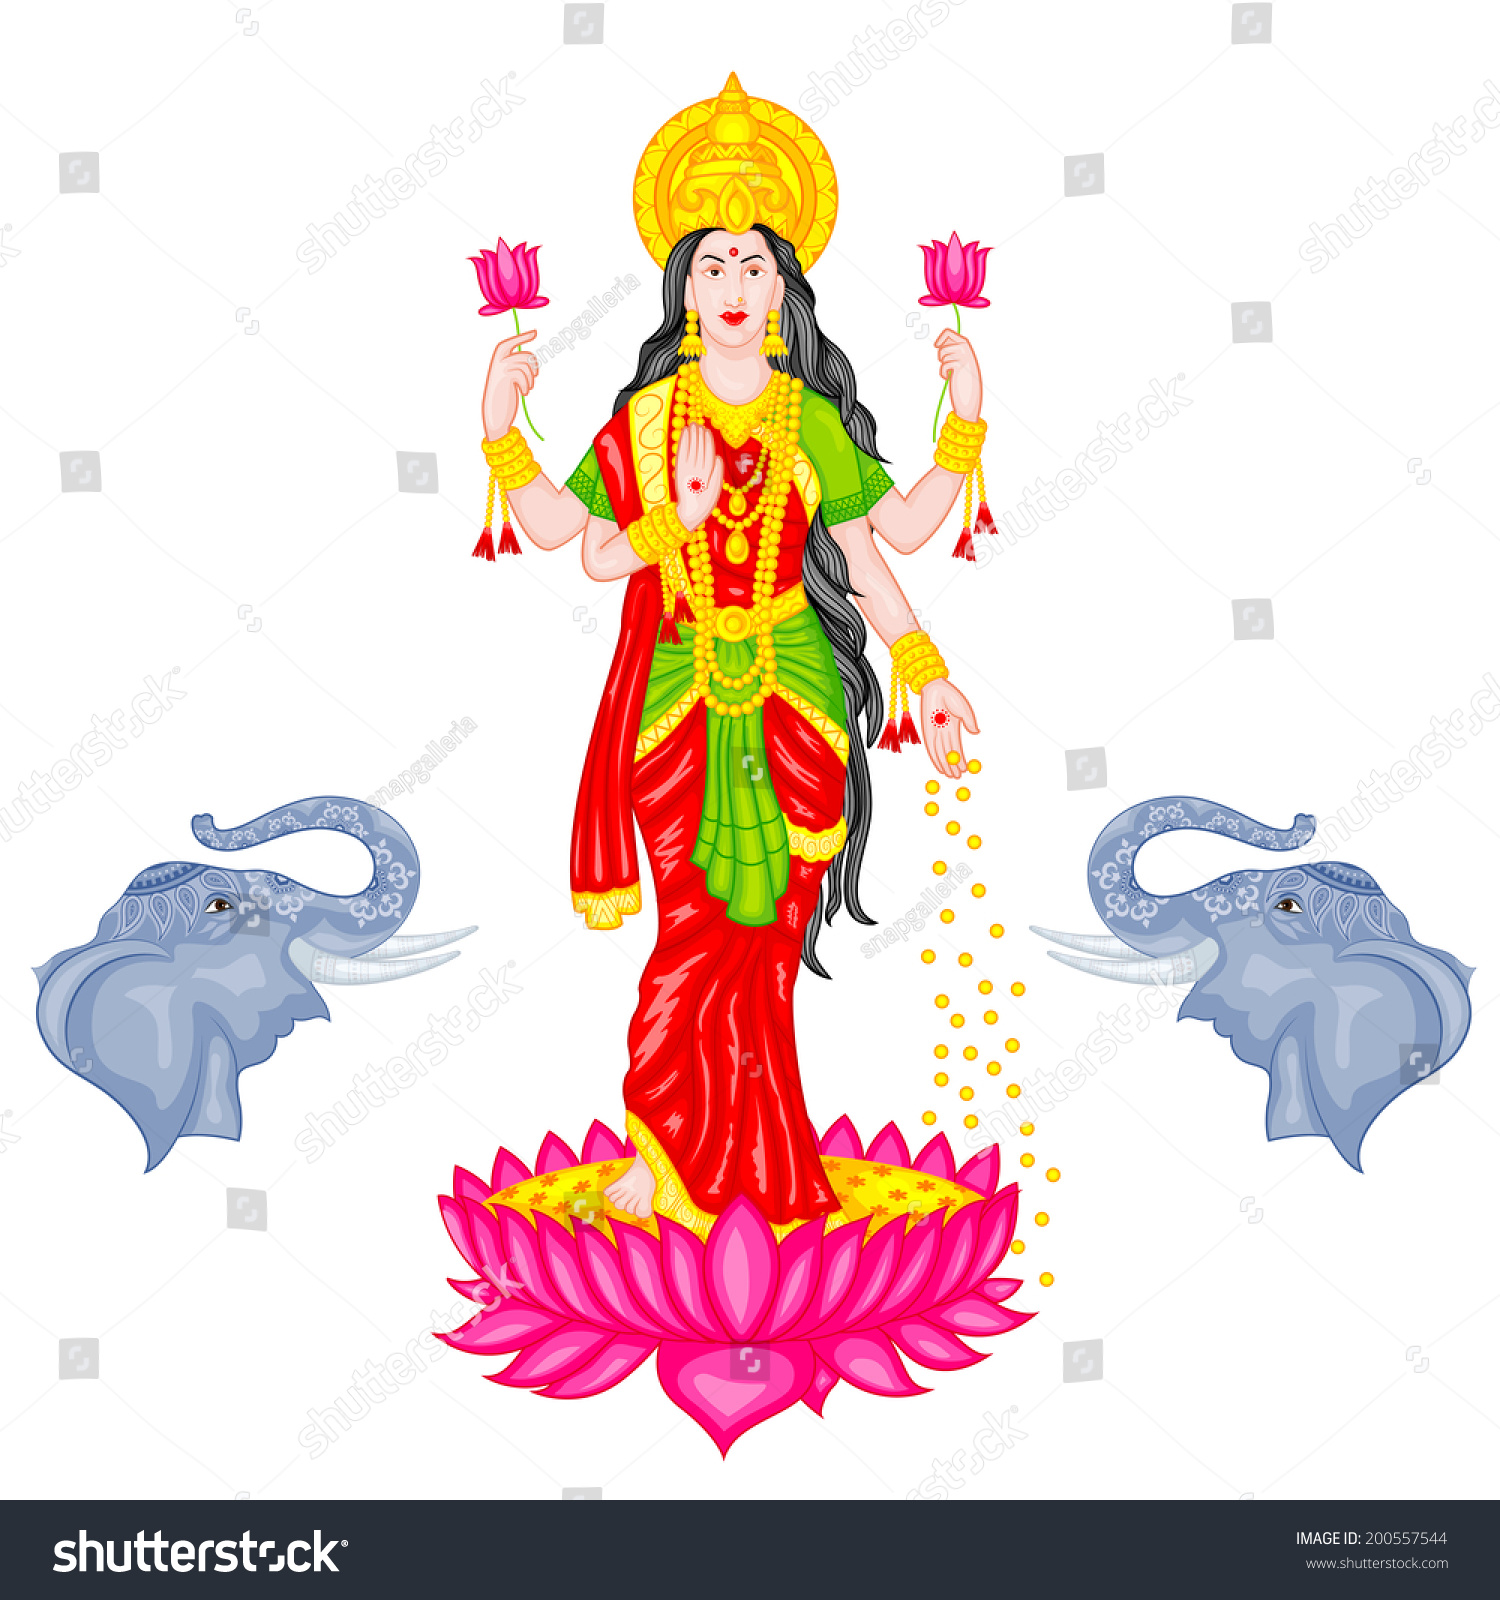 Easy Edit Vector Illustration Goddess Lakshmi Stock Vector Royalty Free 200557544 Temple elephant of southern india. https www shutterstock com image vector easy edit vector illustration goddess lakshmi 200557544